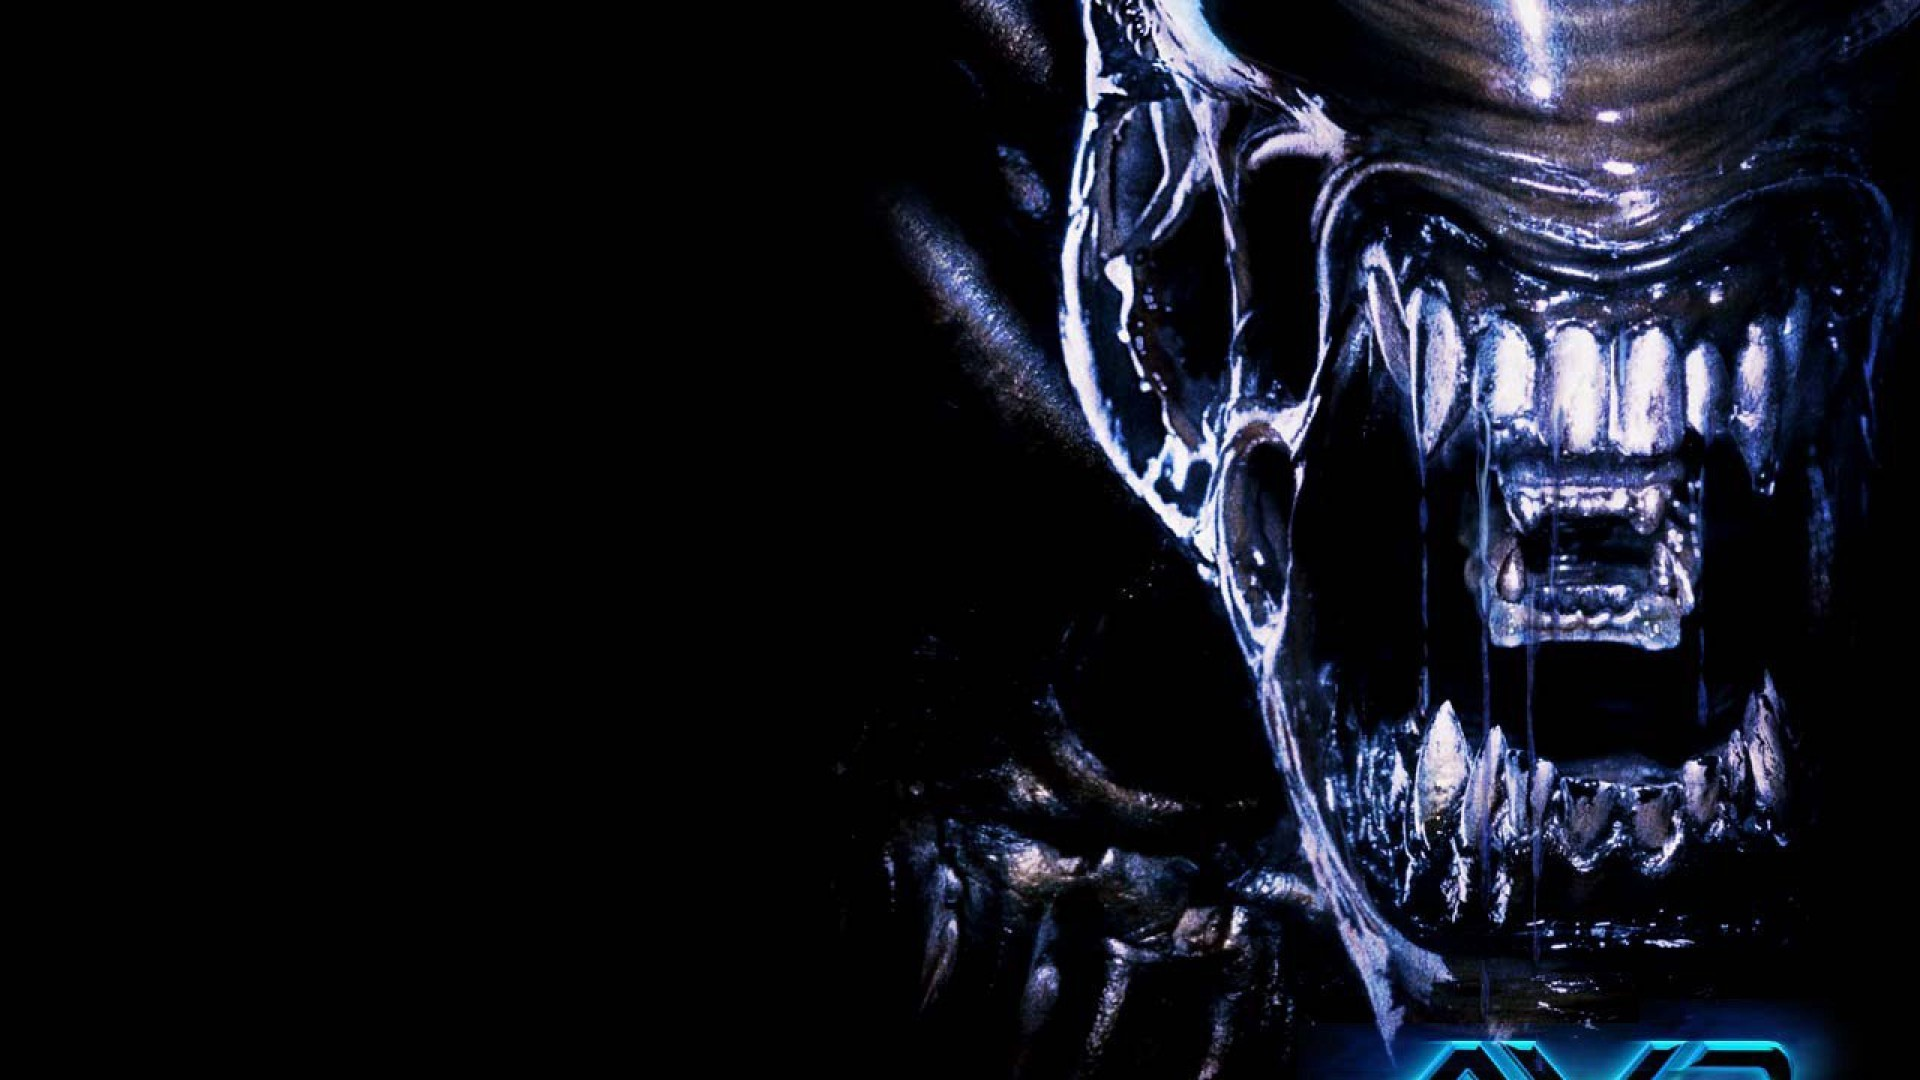 1920x1080 Alien vs predator alien wallpaper hd.